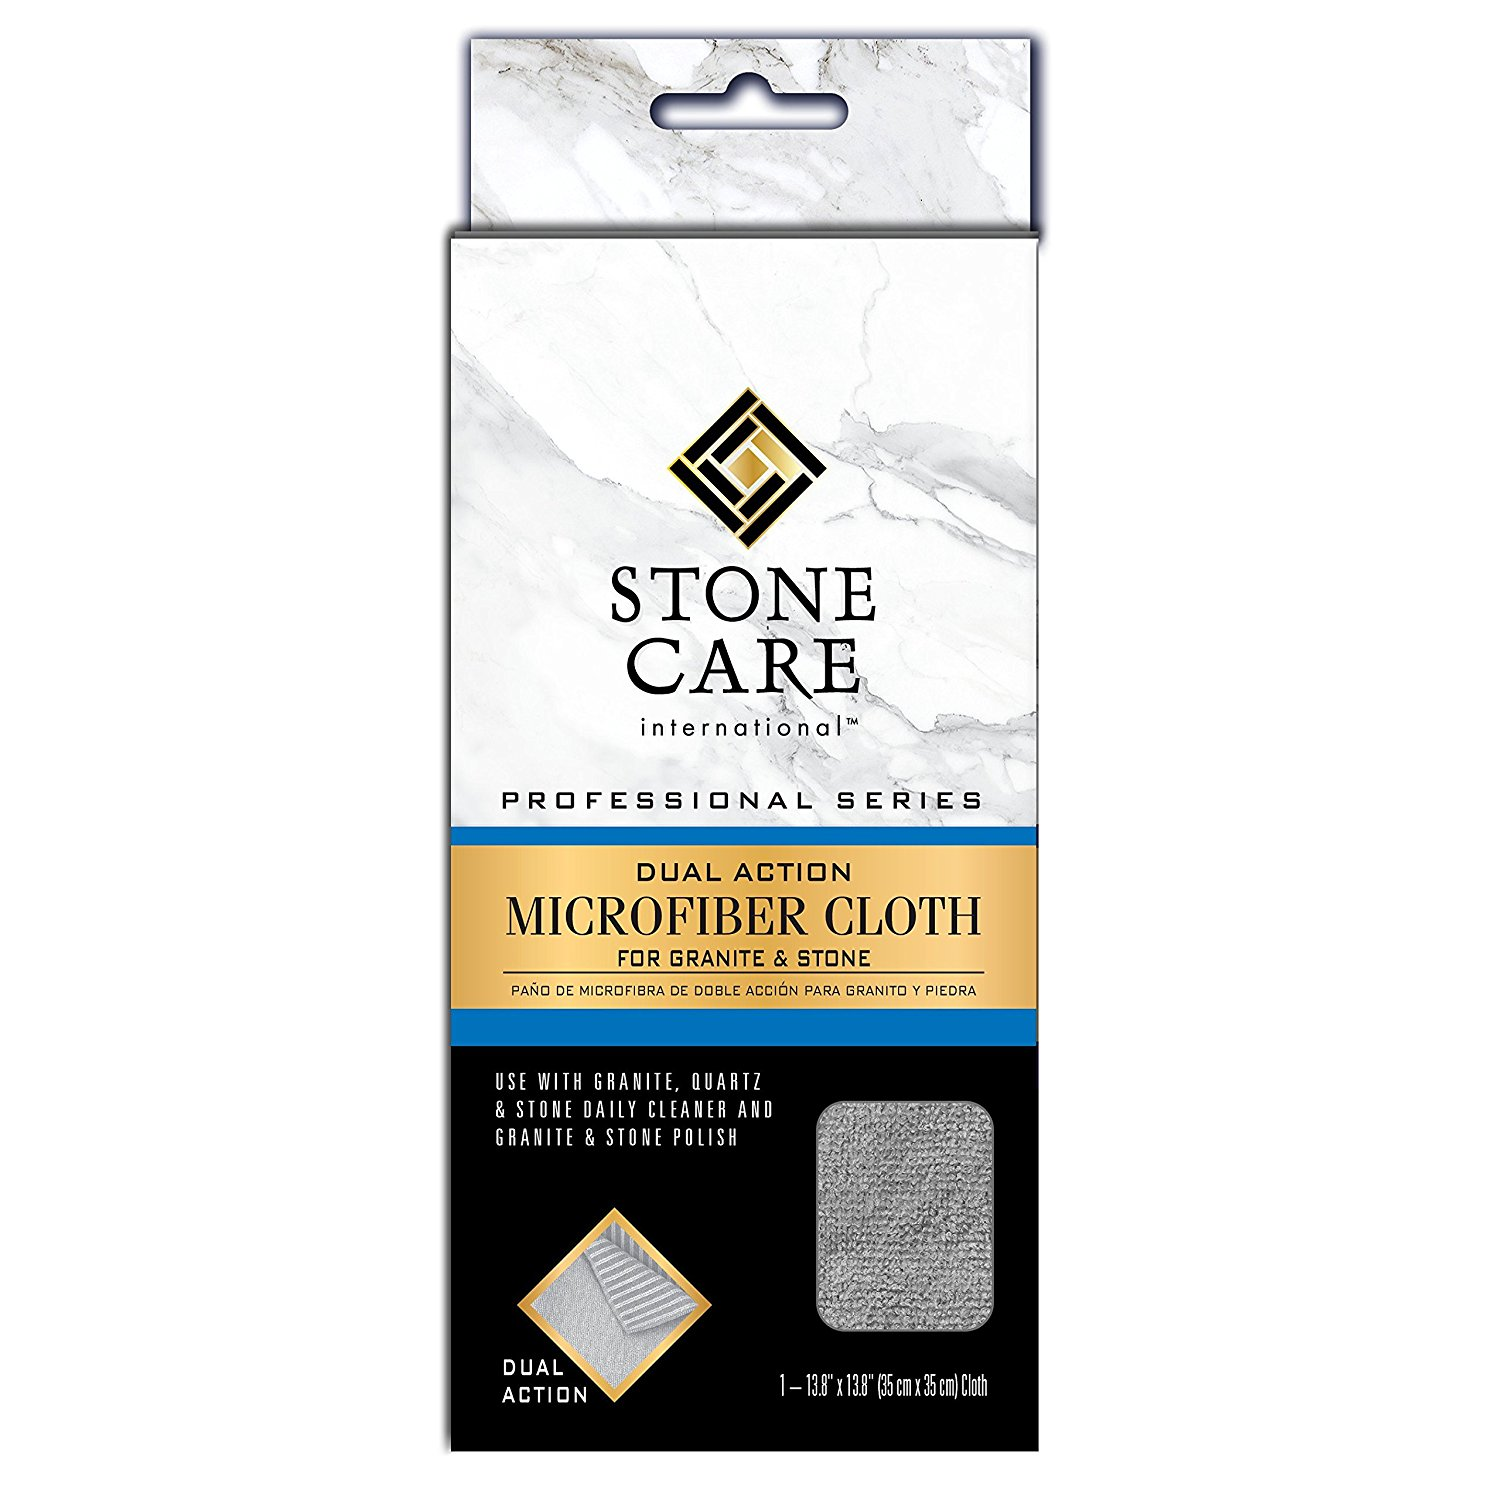 Stone Care International Grantie & Stone Dual Action Microfiber Cloth - Removes Dirt and Polishes Stone